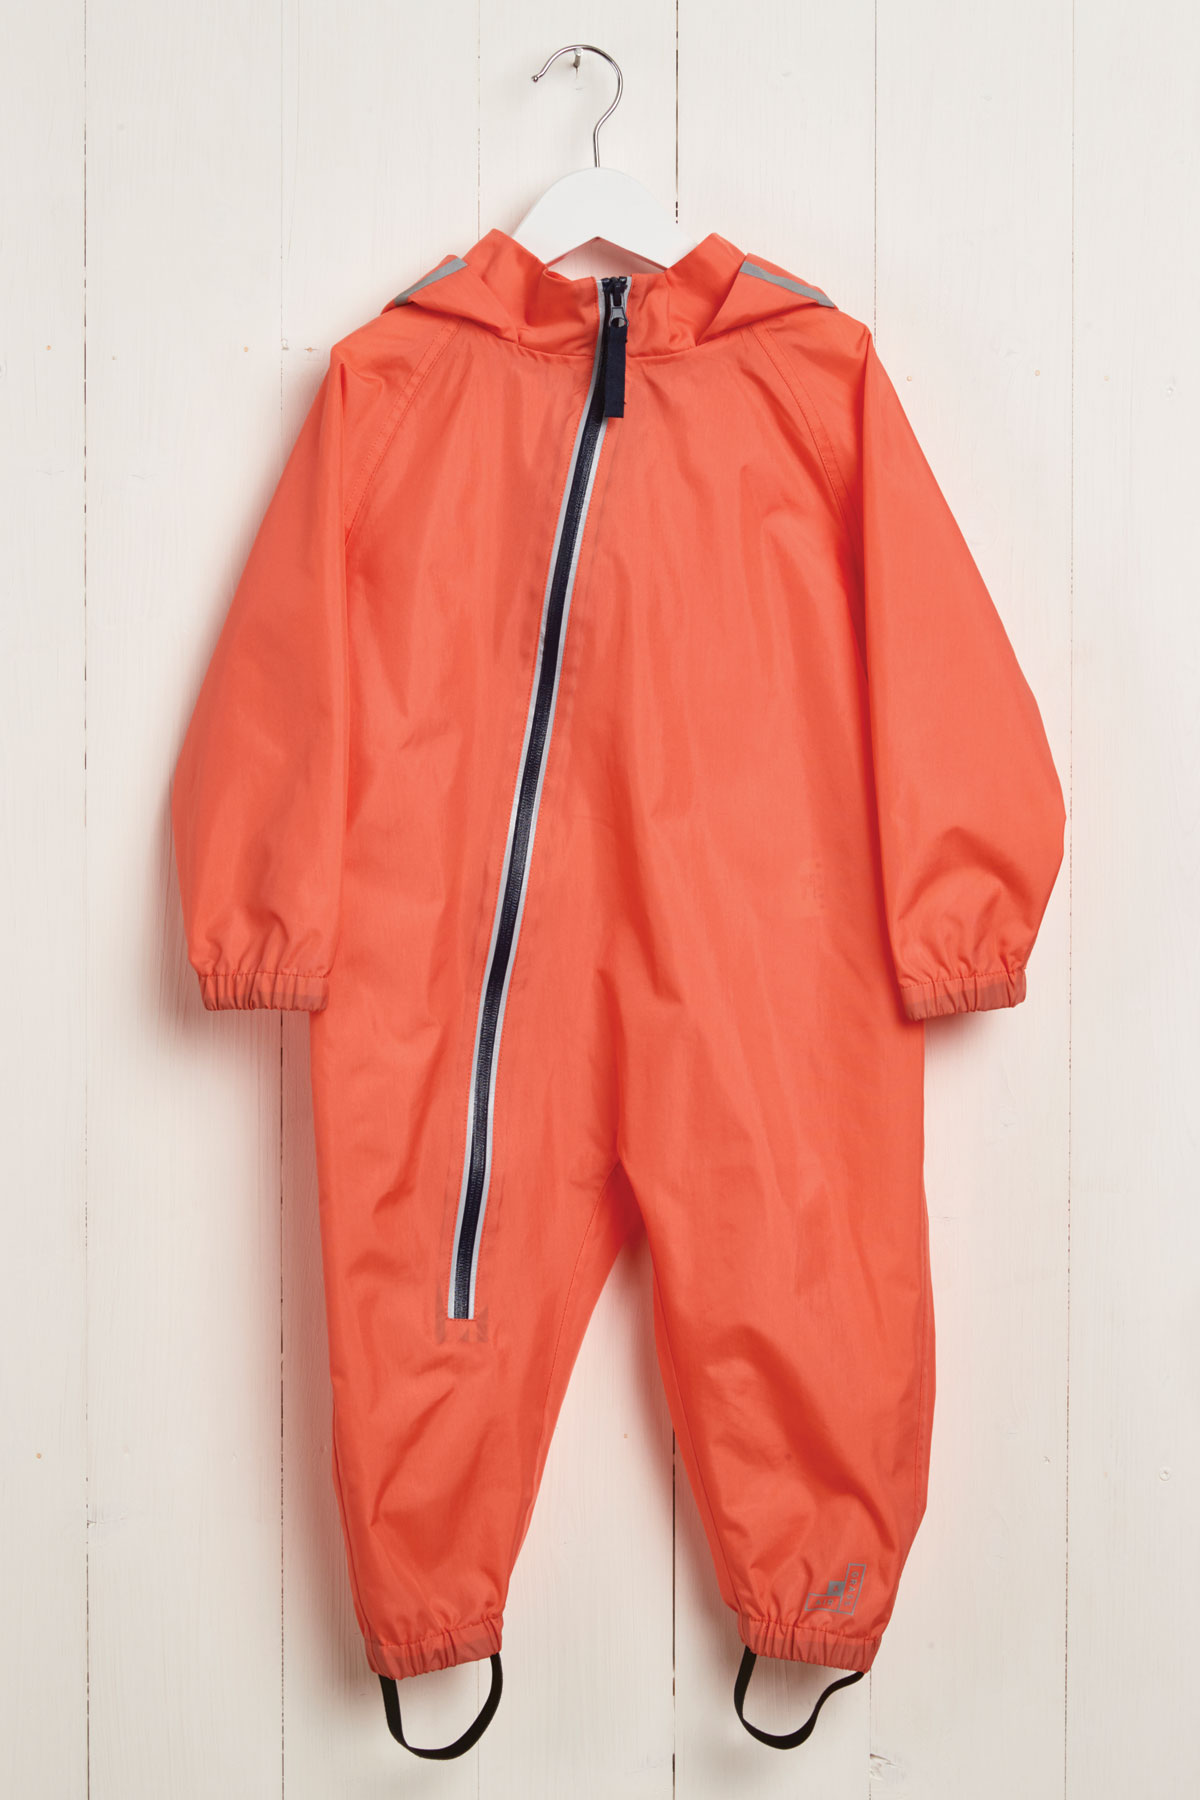 front product view of kids coral puddle suit